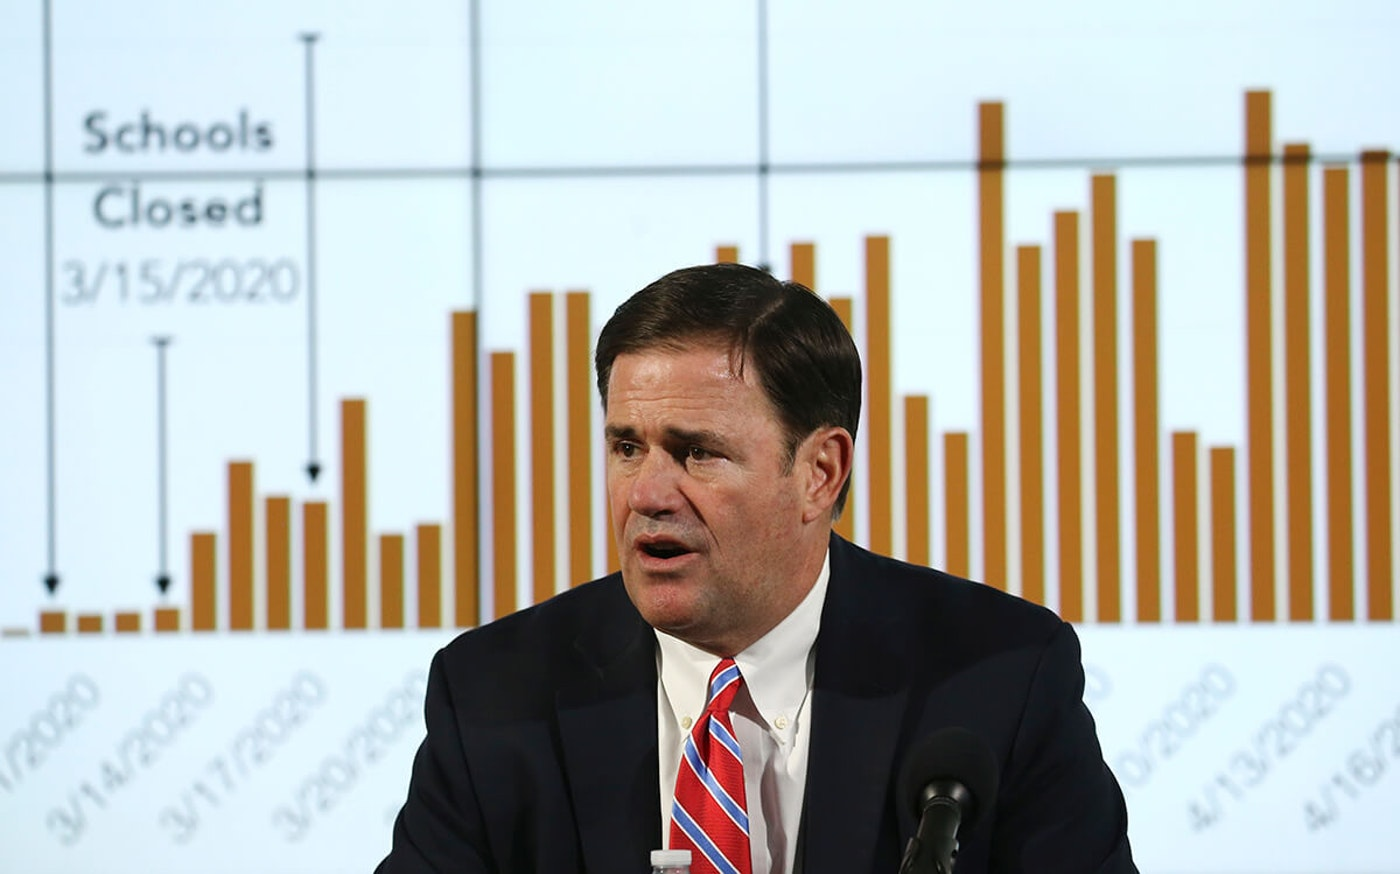 Gov. Ducey sitting in front of a graph of coronavirus-related numbers